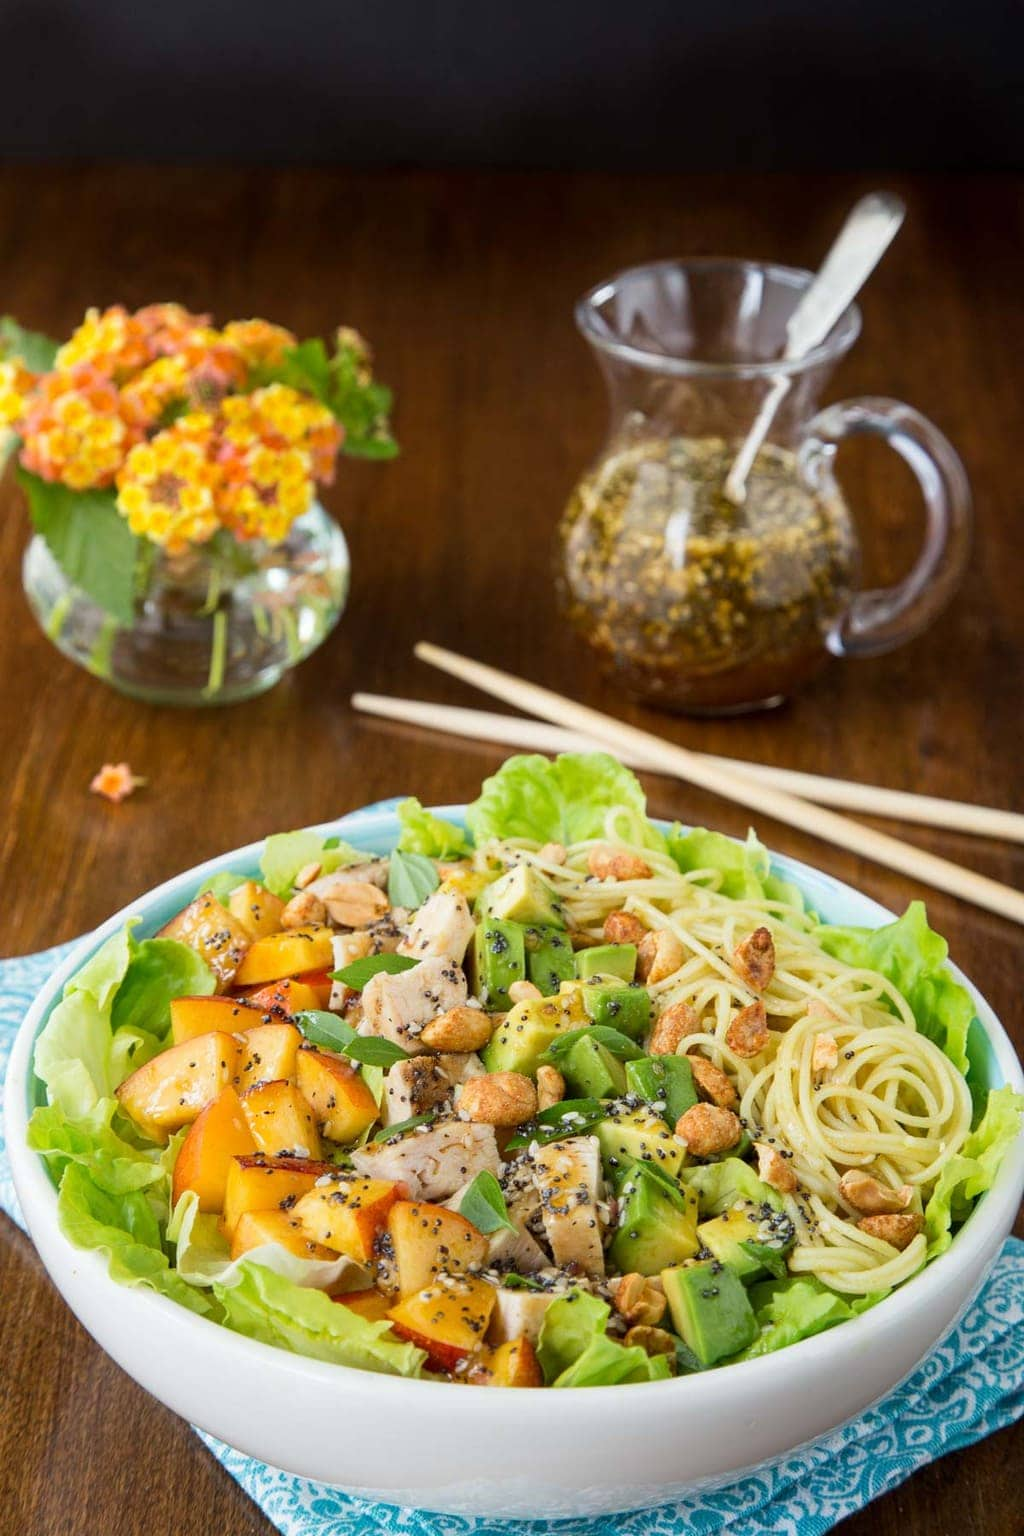 Vertical photo of Asian Chicken and Coconut Curry Noodle Salad in a white bowl on a wood table.